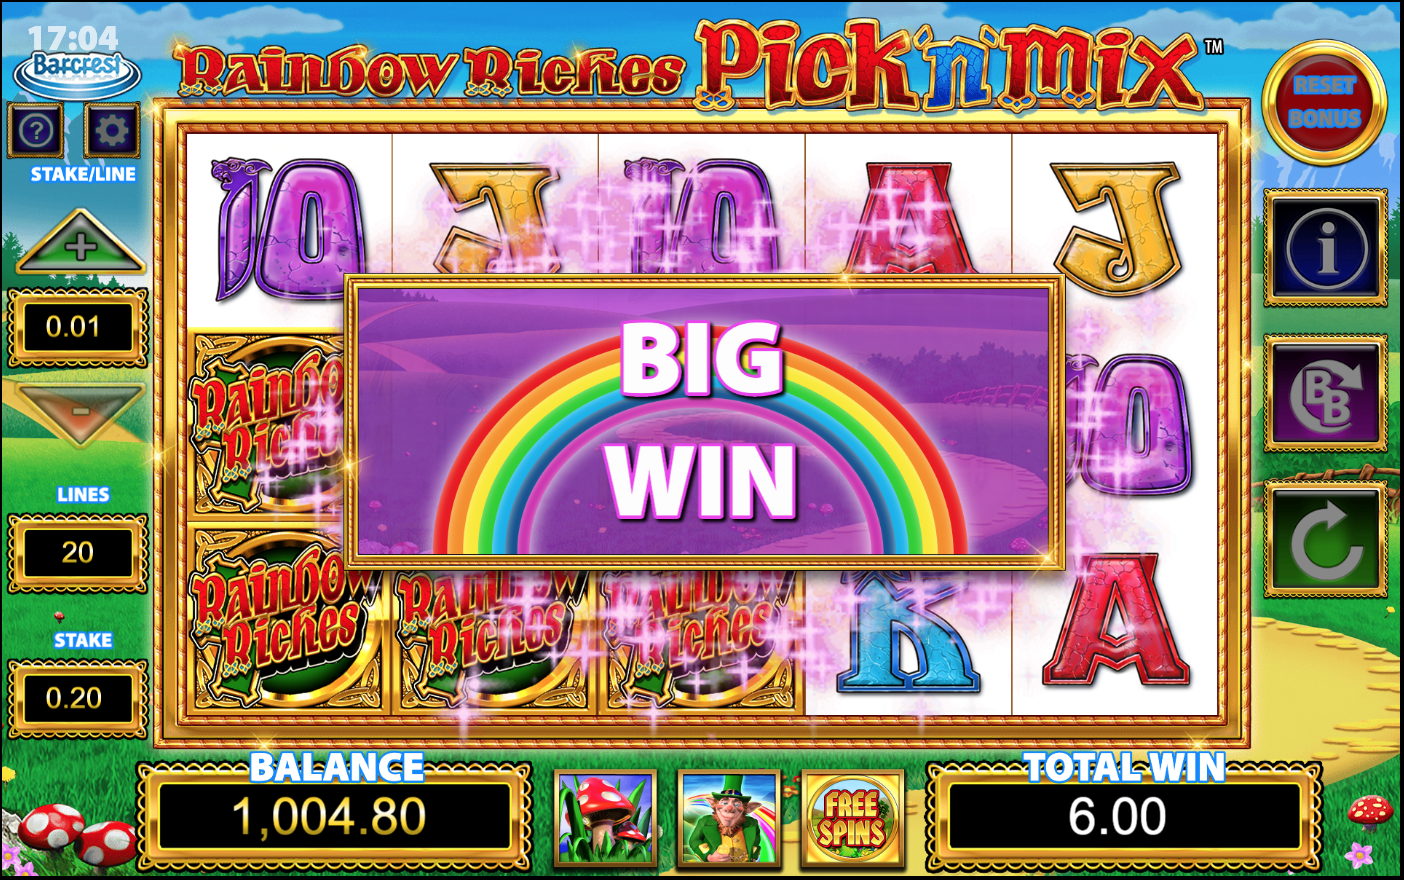 rainbow riches pick n mix game Slots